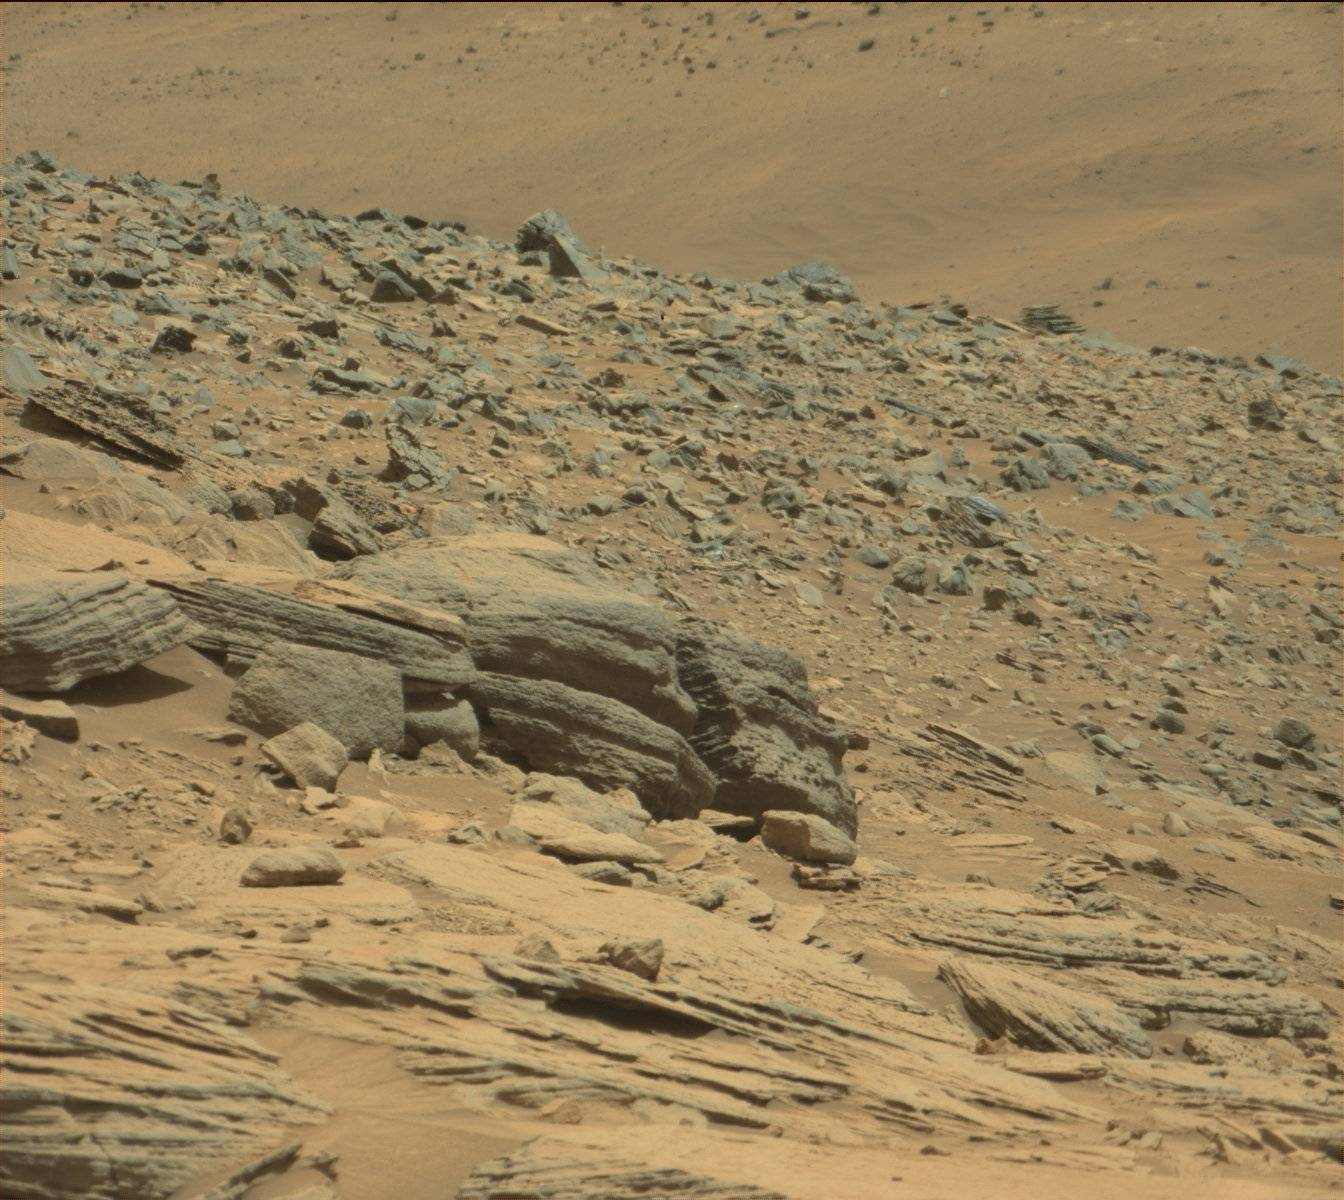 mars rover finds animal - photo #19